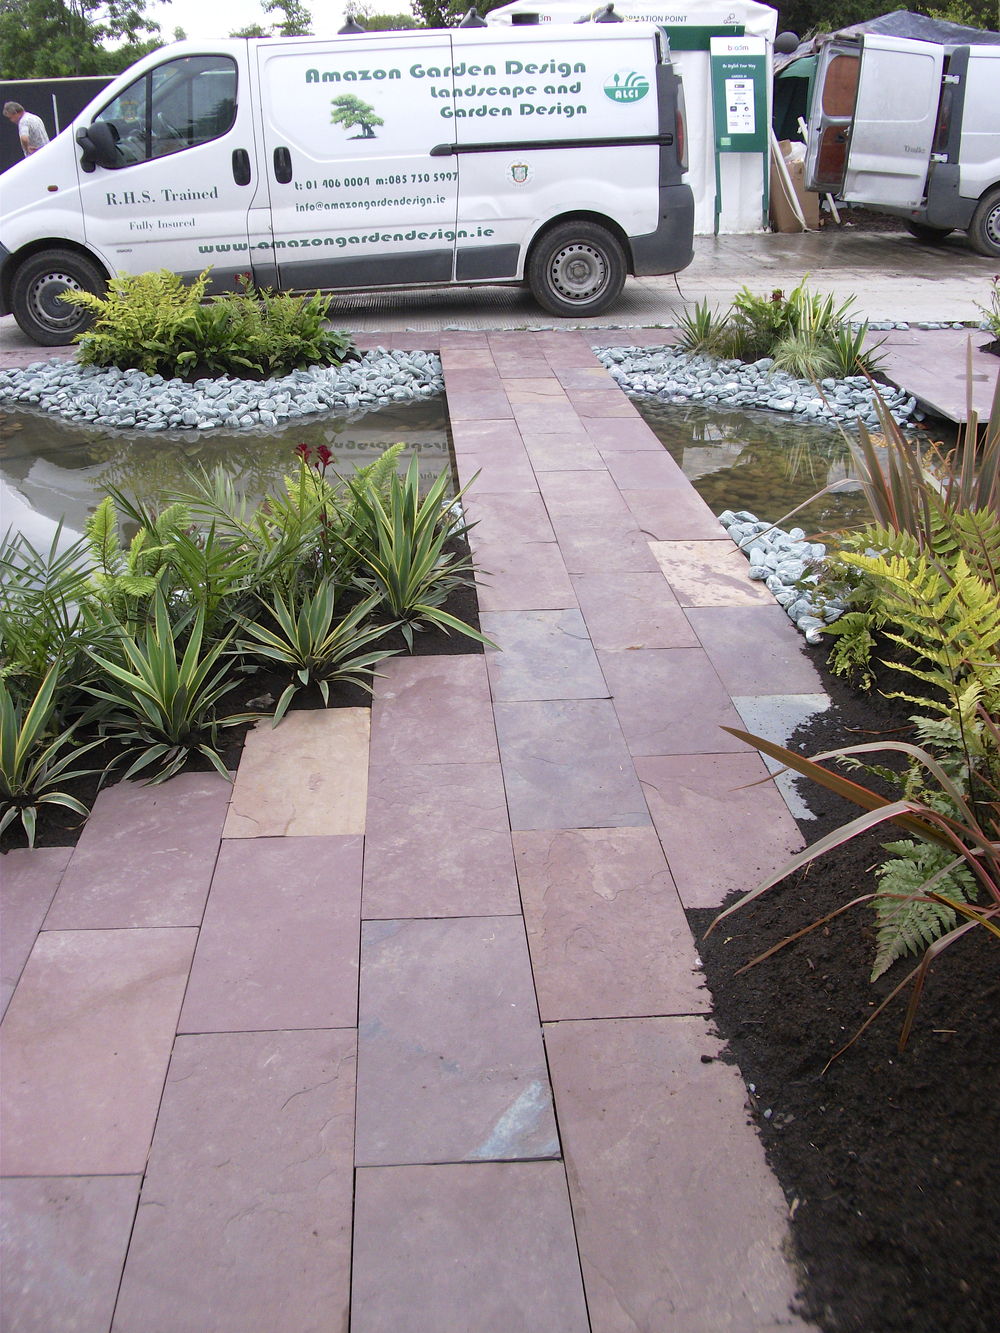 Amazon bloom garden indian Plum slate.jpg